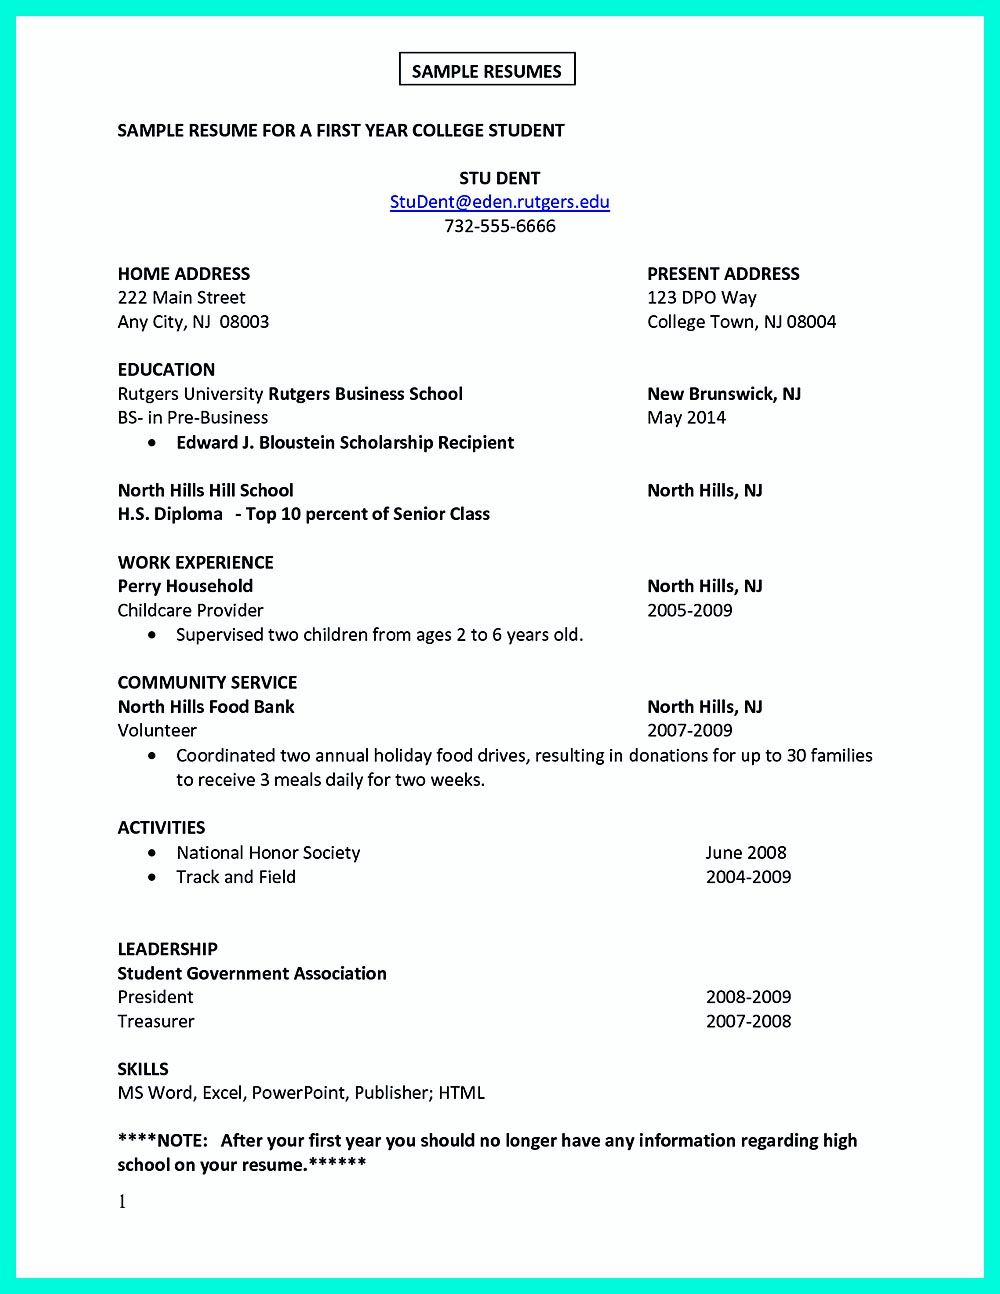 college student sample resumehtml – Sample Resumes for College